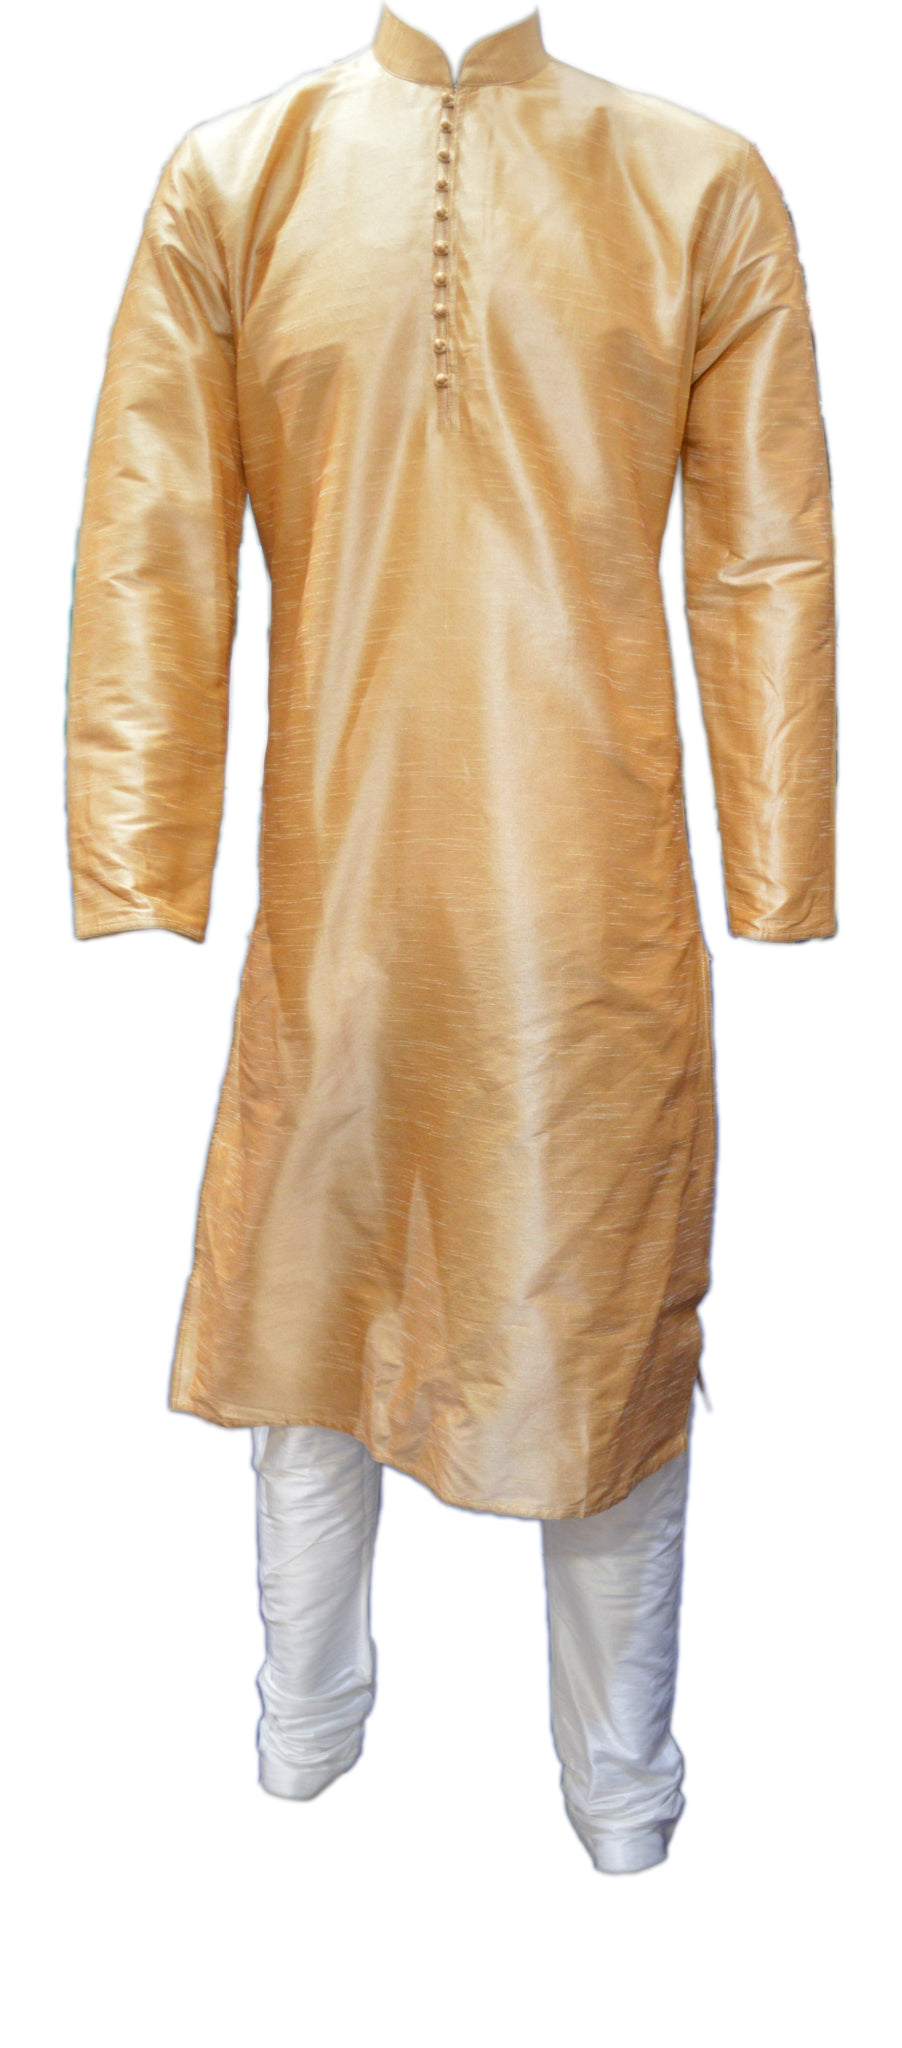 Plain Kurtas For Weddings Mehndis Pujas Ceremonies